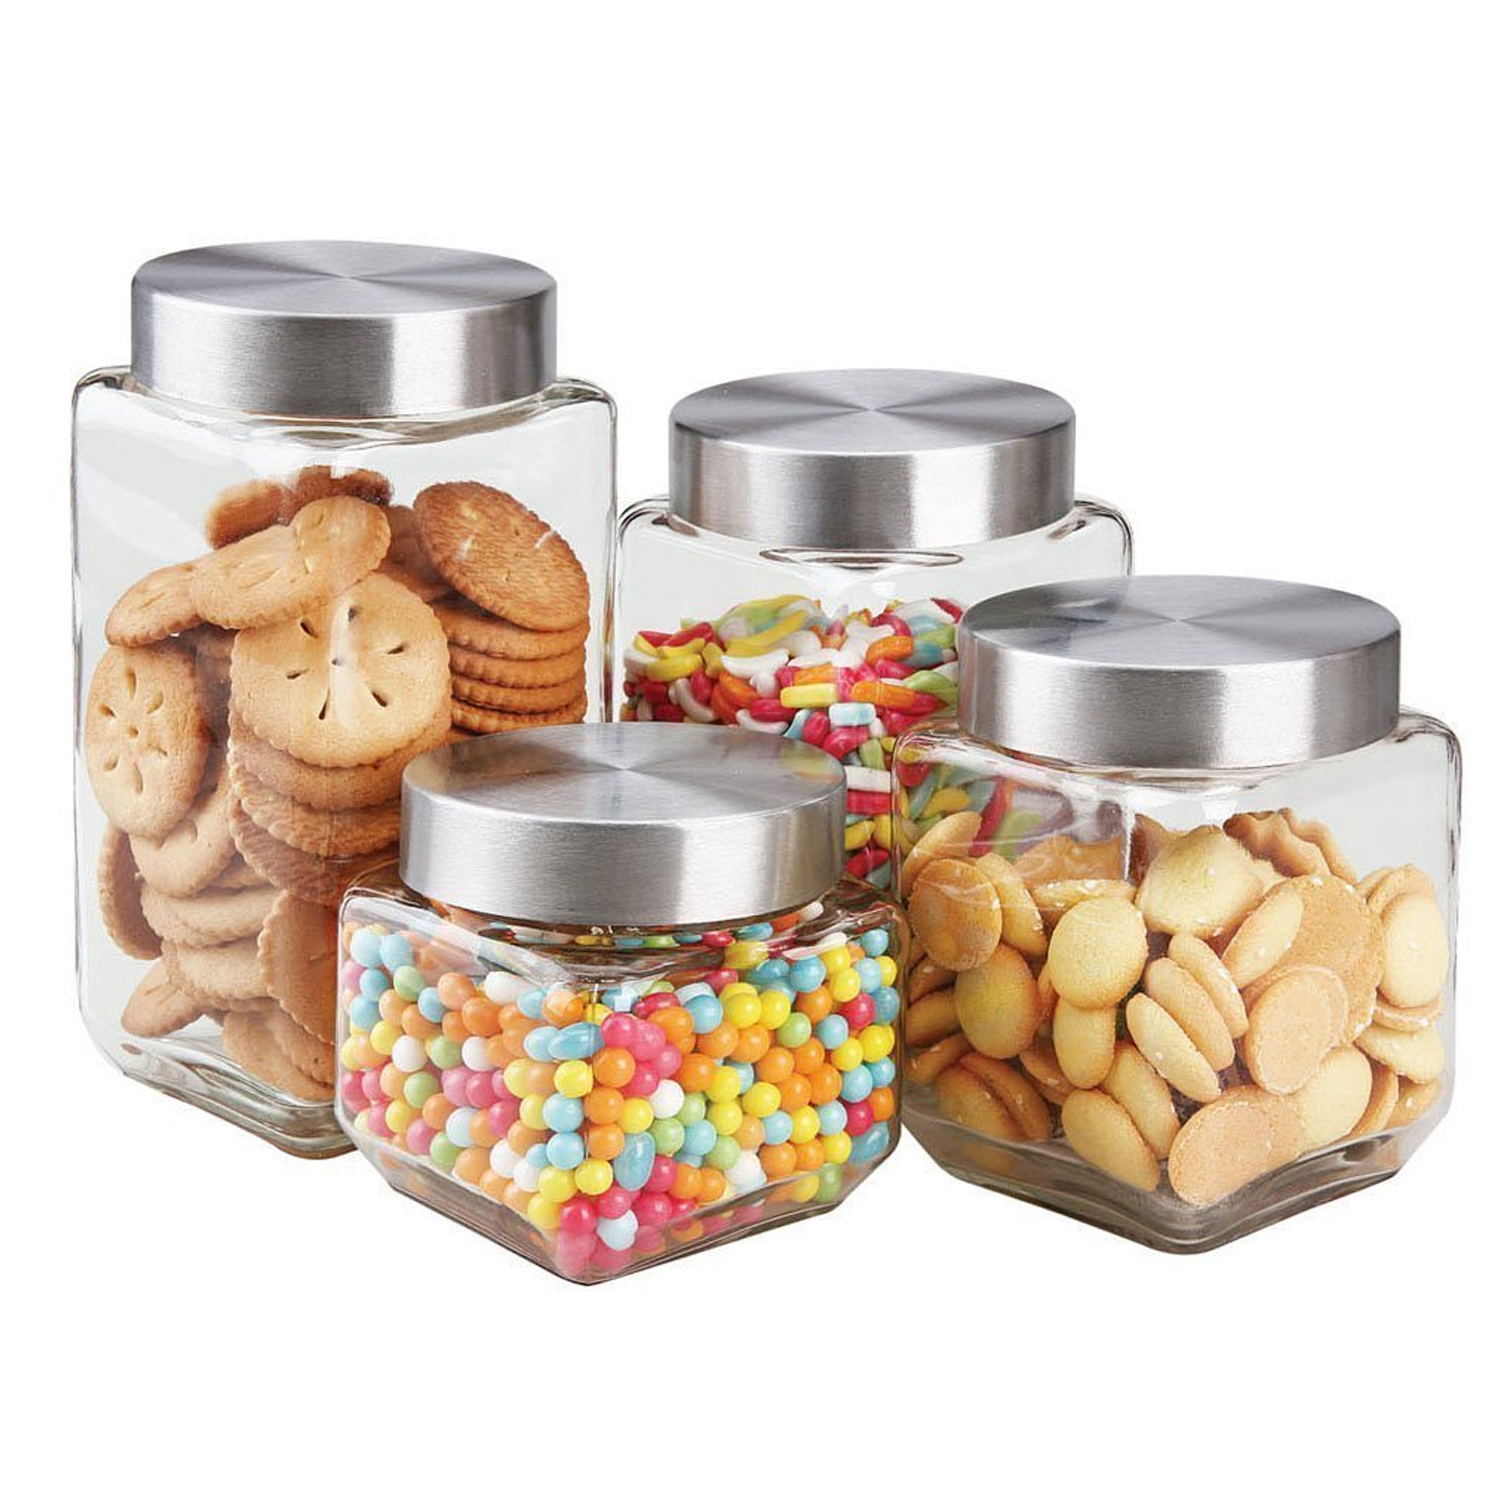 home basics 4 piece square steel top glass food storage kitchen canister set